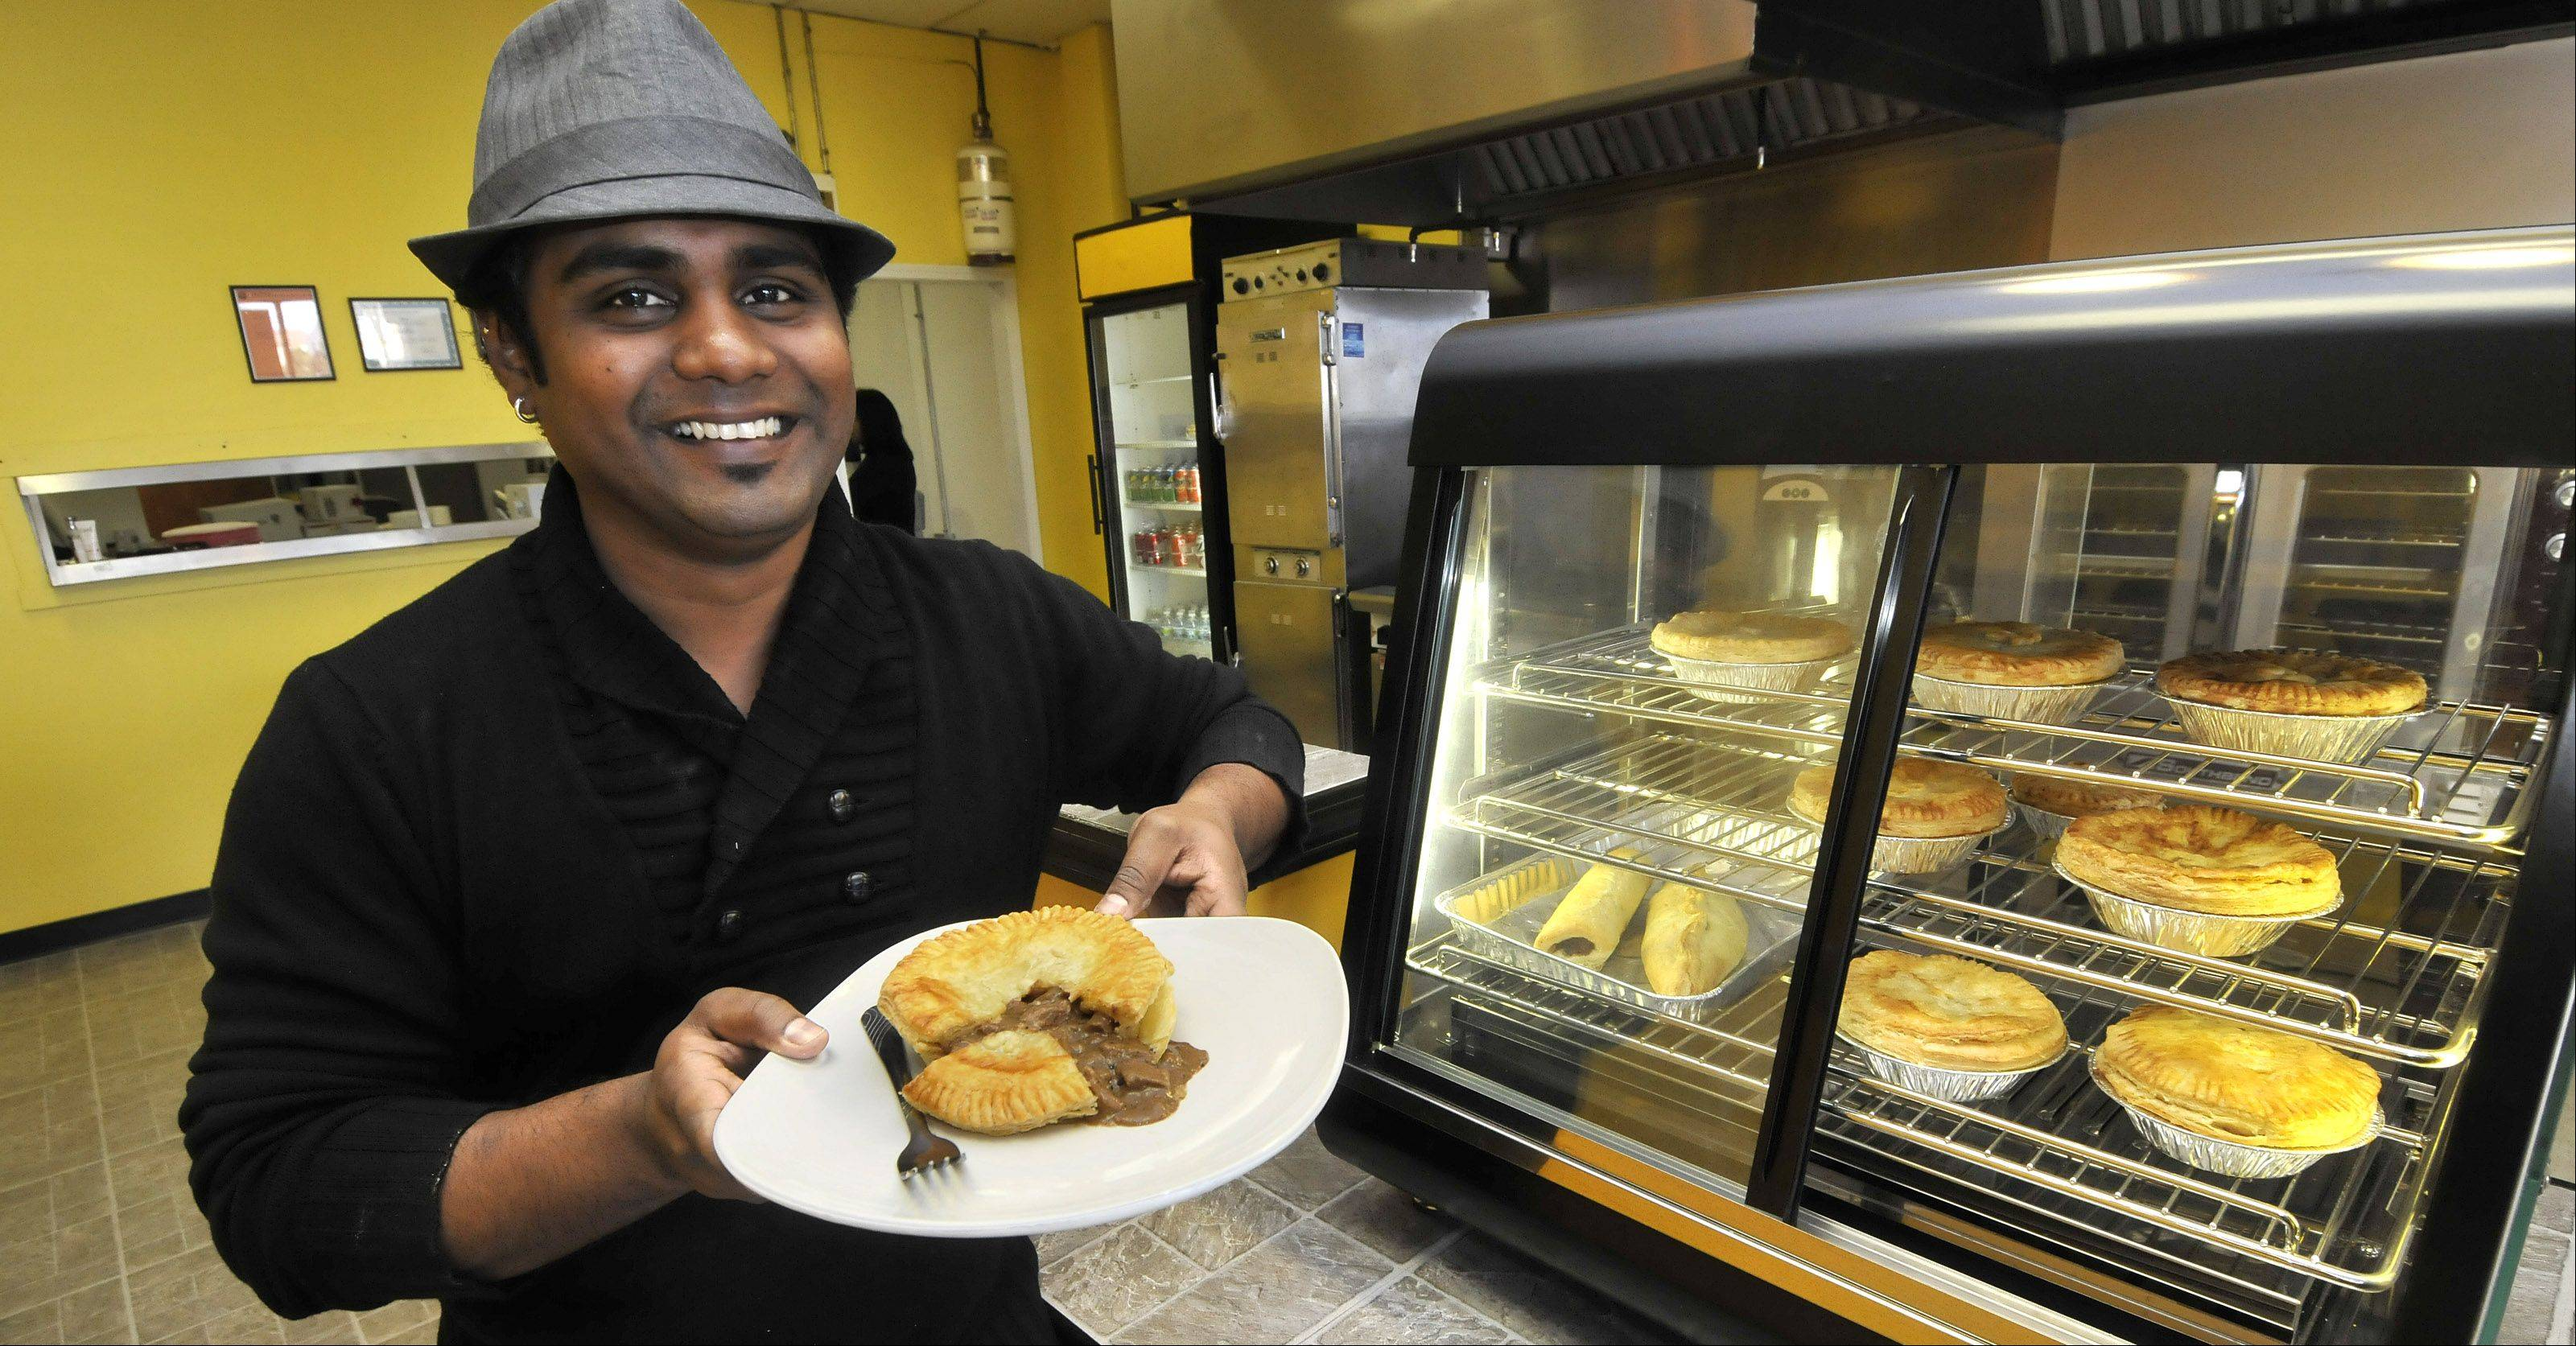 Owner Tyrel Naidoo shows off one of his steak pies in his Pie Boss shop in Aurora. He bakes a variety of pies filled with beef, chicken, spinach and feta cheese. You can order them to-go or take home frozen pies to enjoy later.